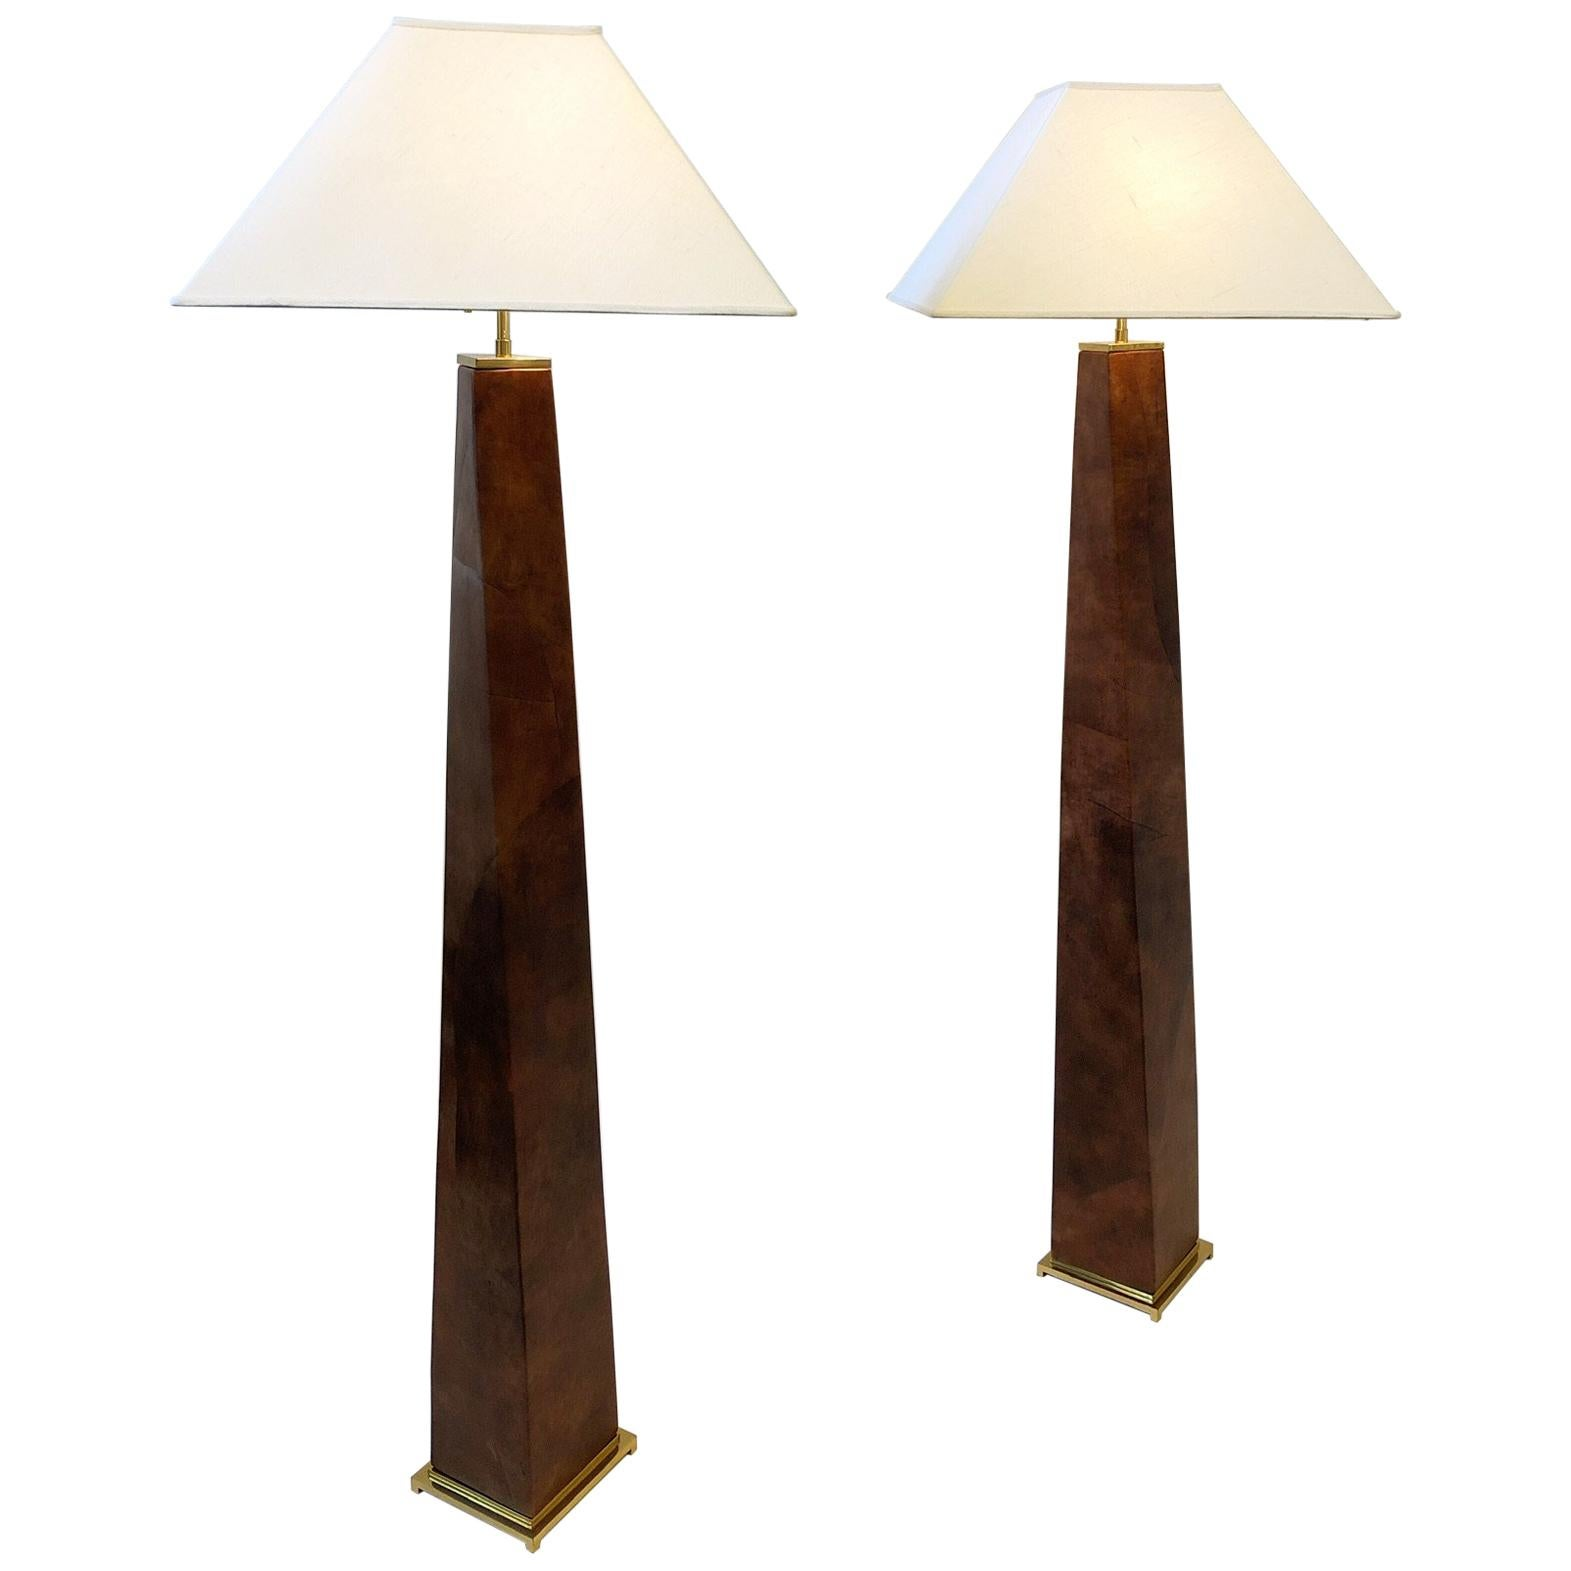 Pair of Brass and Leather Floor Lamps by Karl Springer